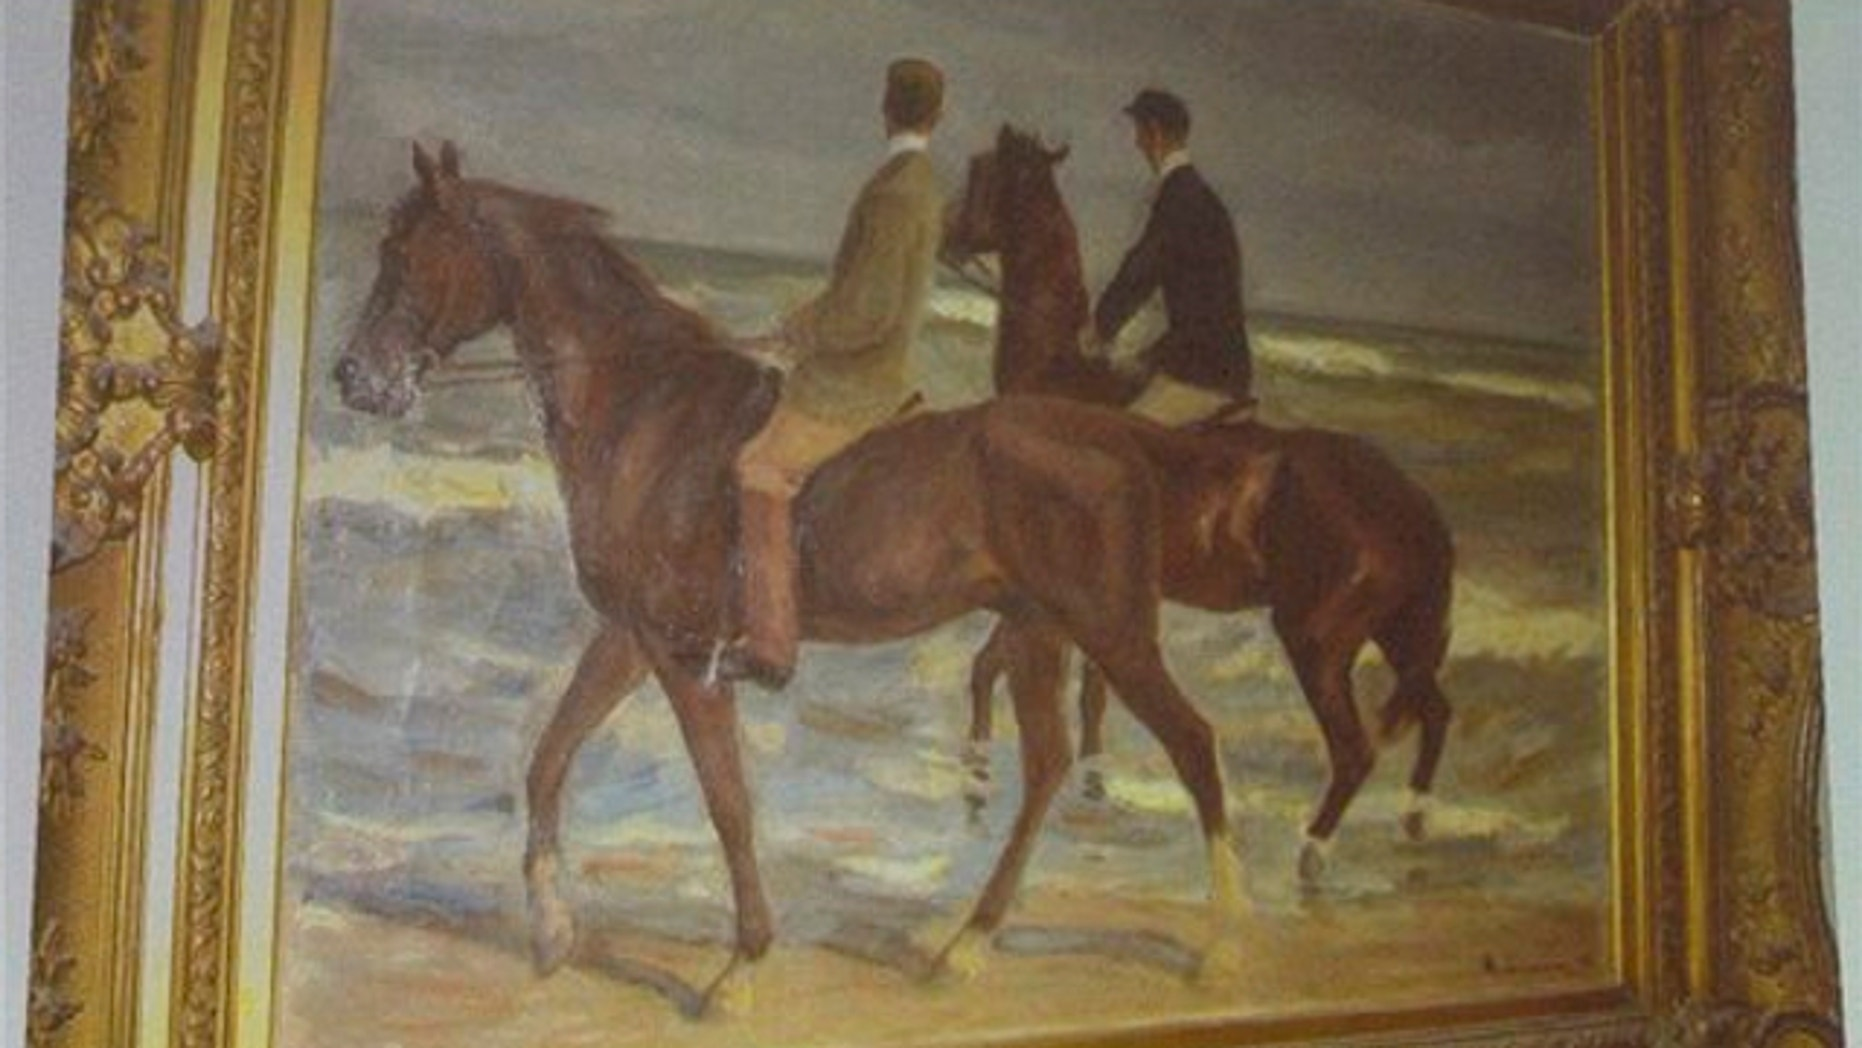 """Nov.5, 2013: A painting from Max Liebermann """"Zwei Reiter am Strande"""" (""""Two riders on the beach"""") is projected on a screen during a news conference in Augsburg, southern Germany, on the art found in Munich."""